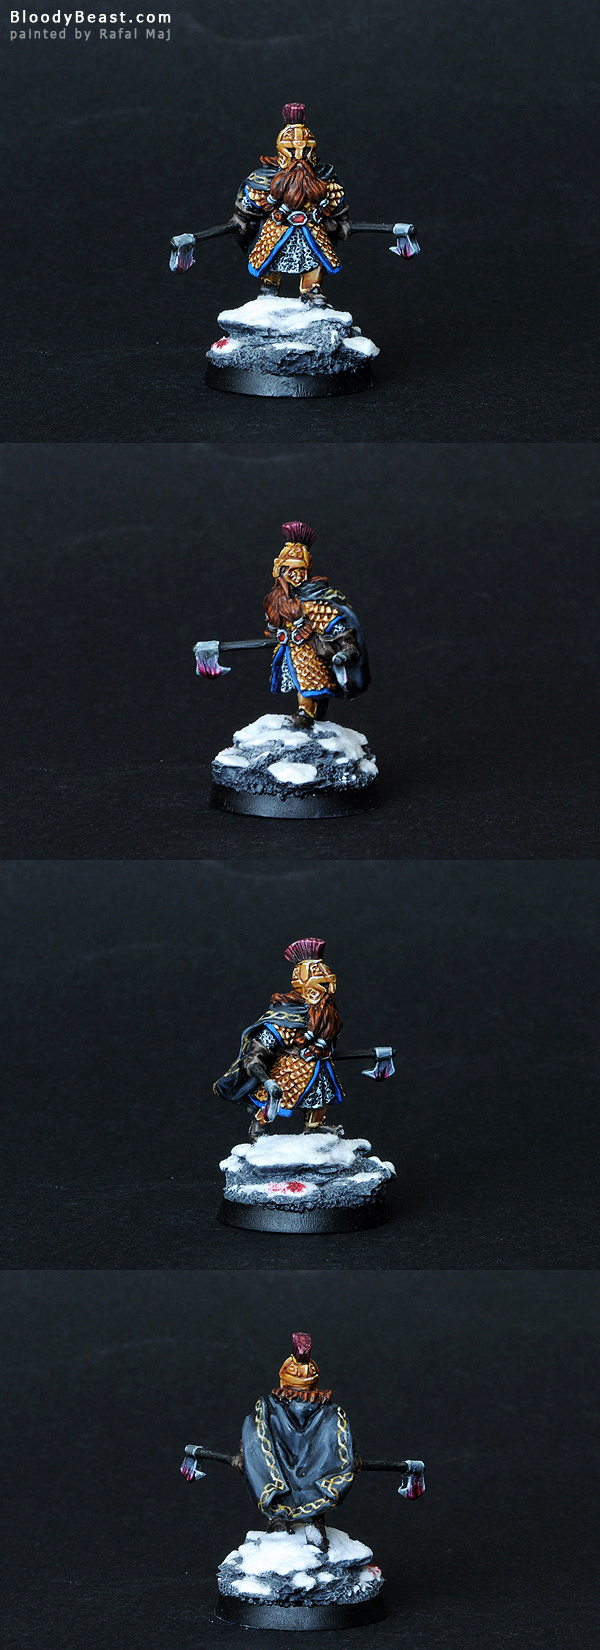 King's Champion painted by Rafal Maj (BloodyBeast.com)